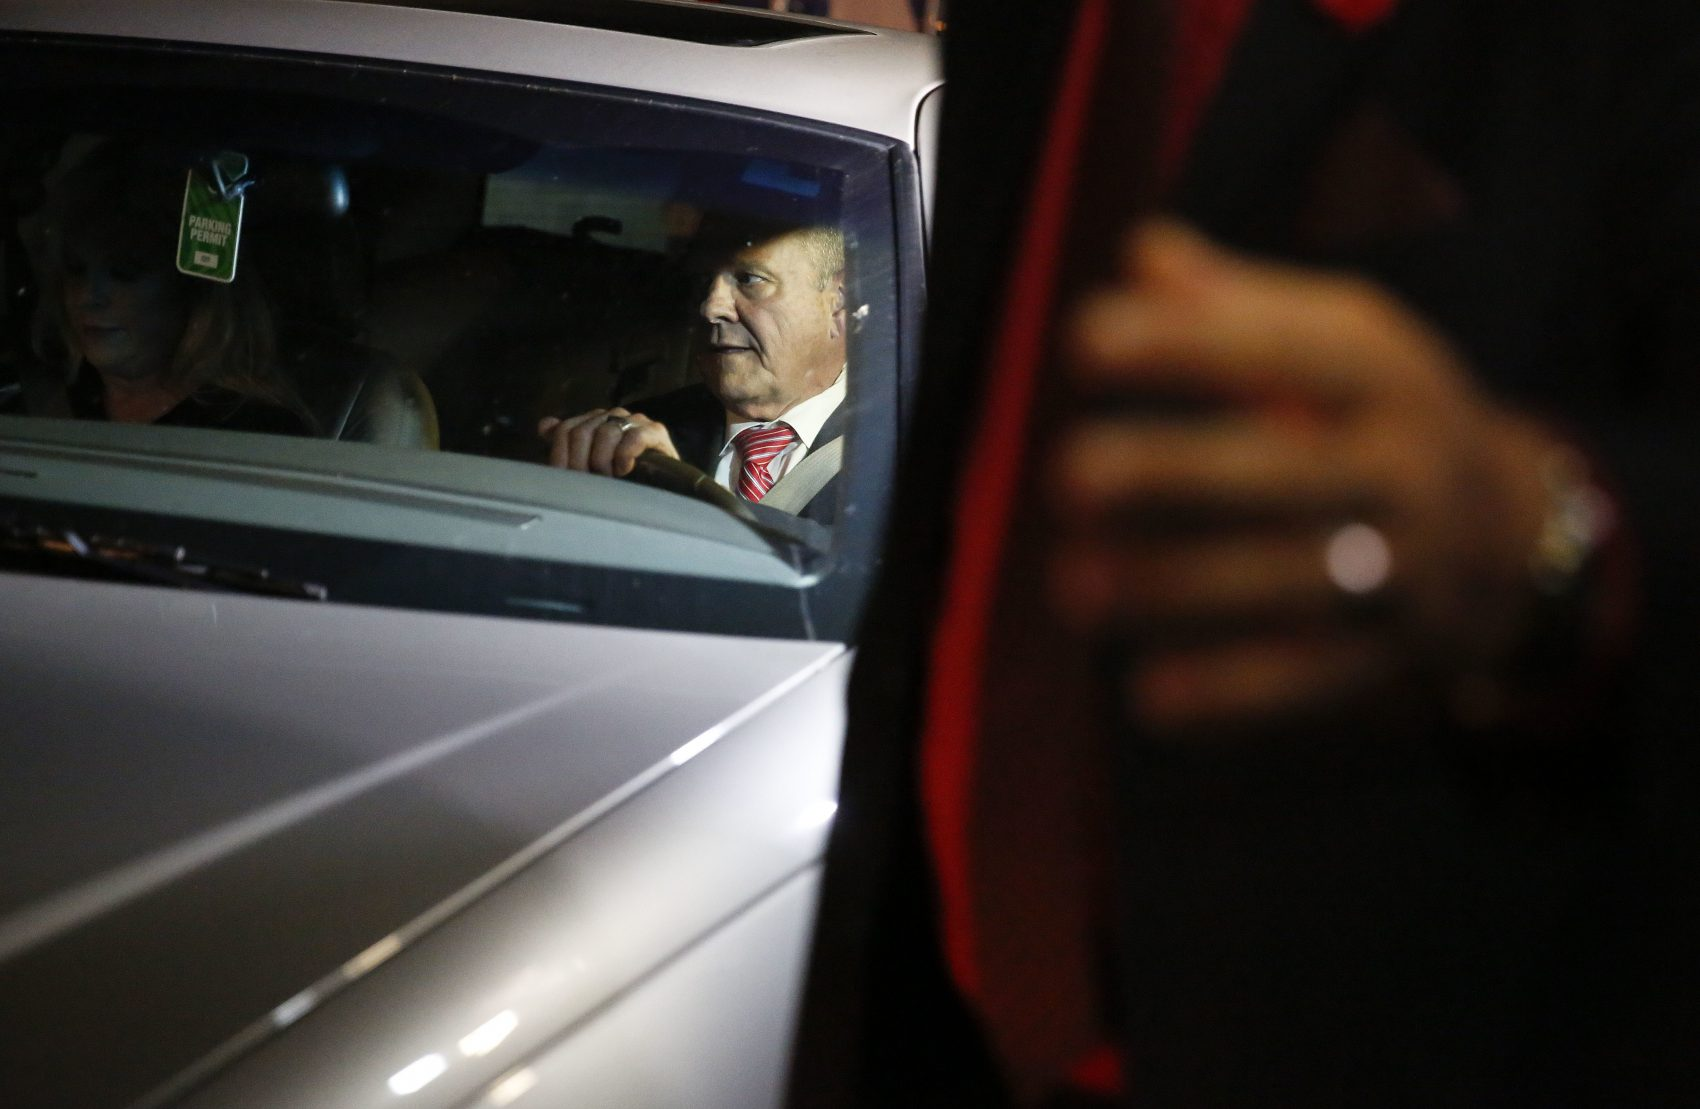 Former Alabama Chief Justice and U.S. Senate candidate Roy Moore drives away in his car after he speaks at a church revival, Tuesday, Nov. 14, 2017, in Jackson, Ala. (Brynn Anderson/AP)